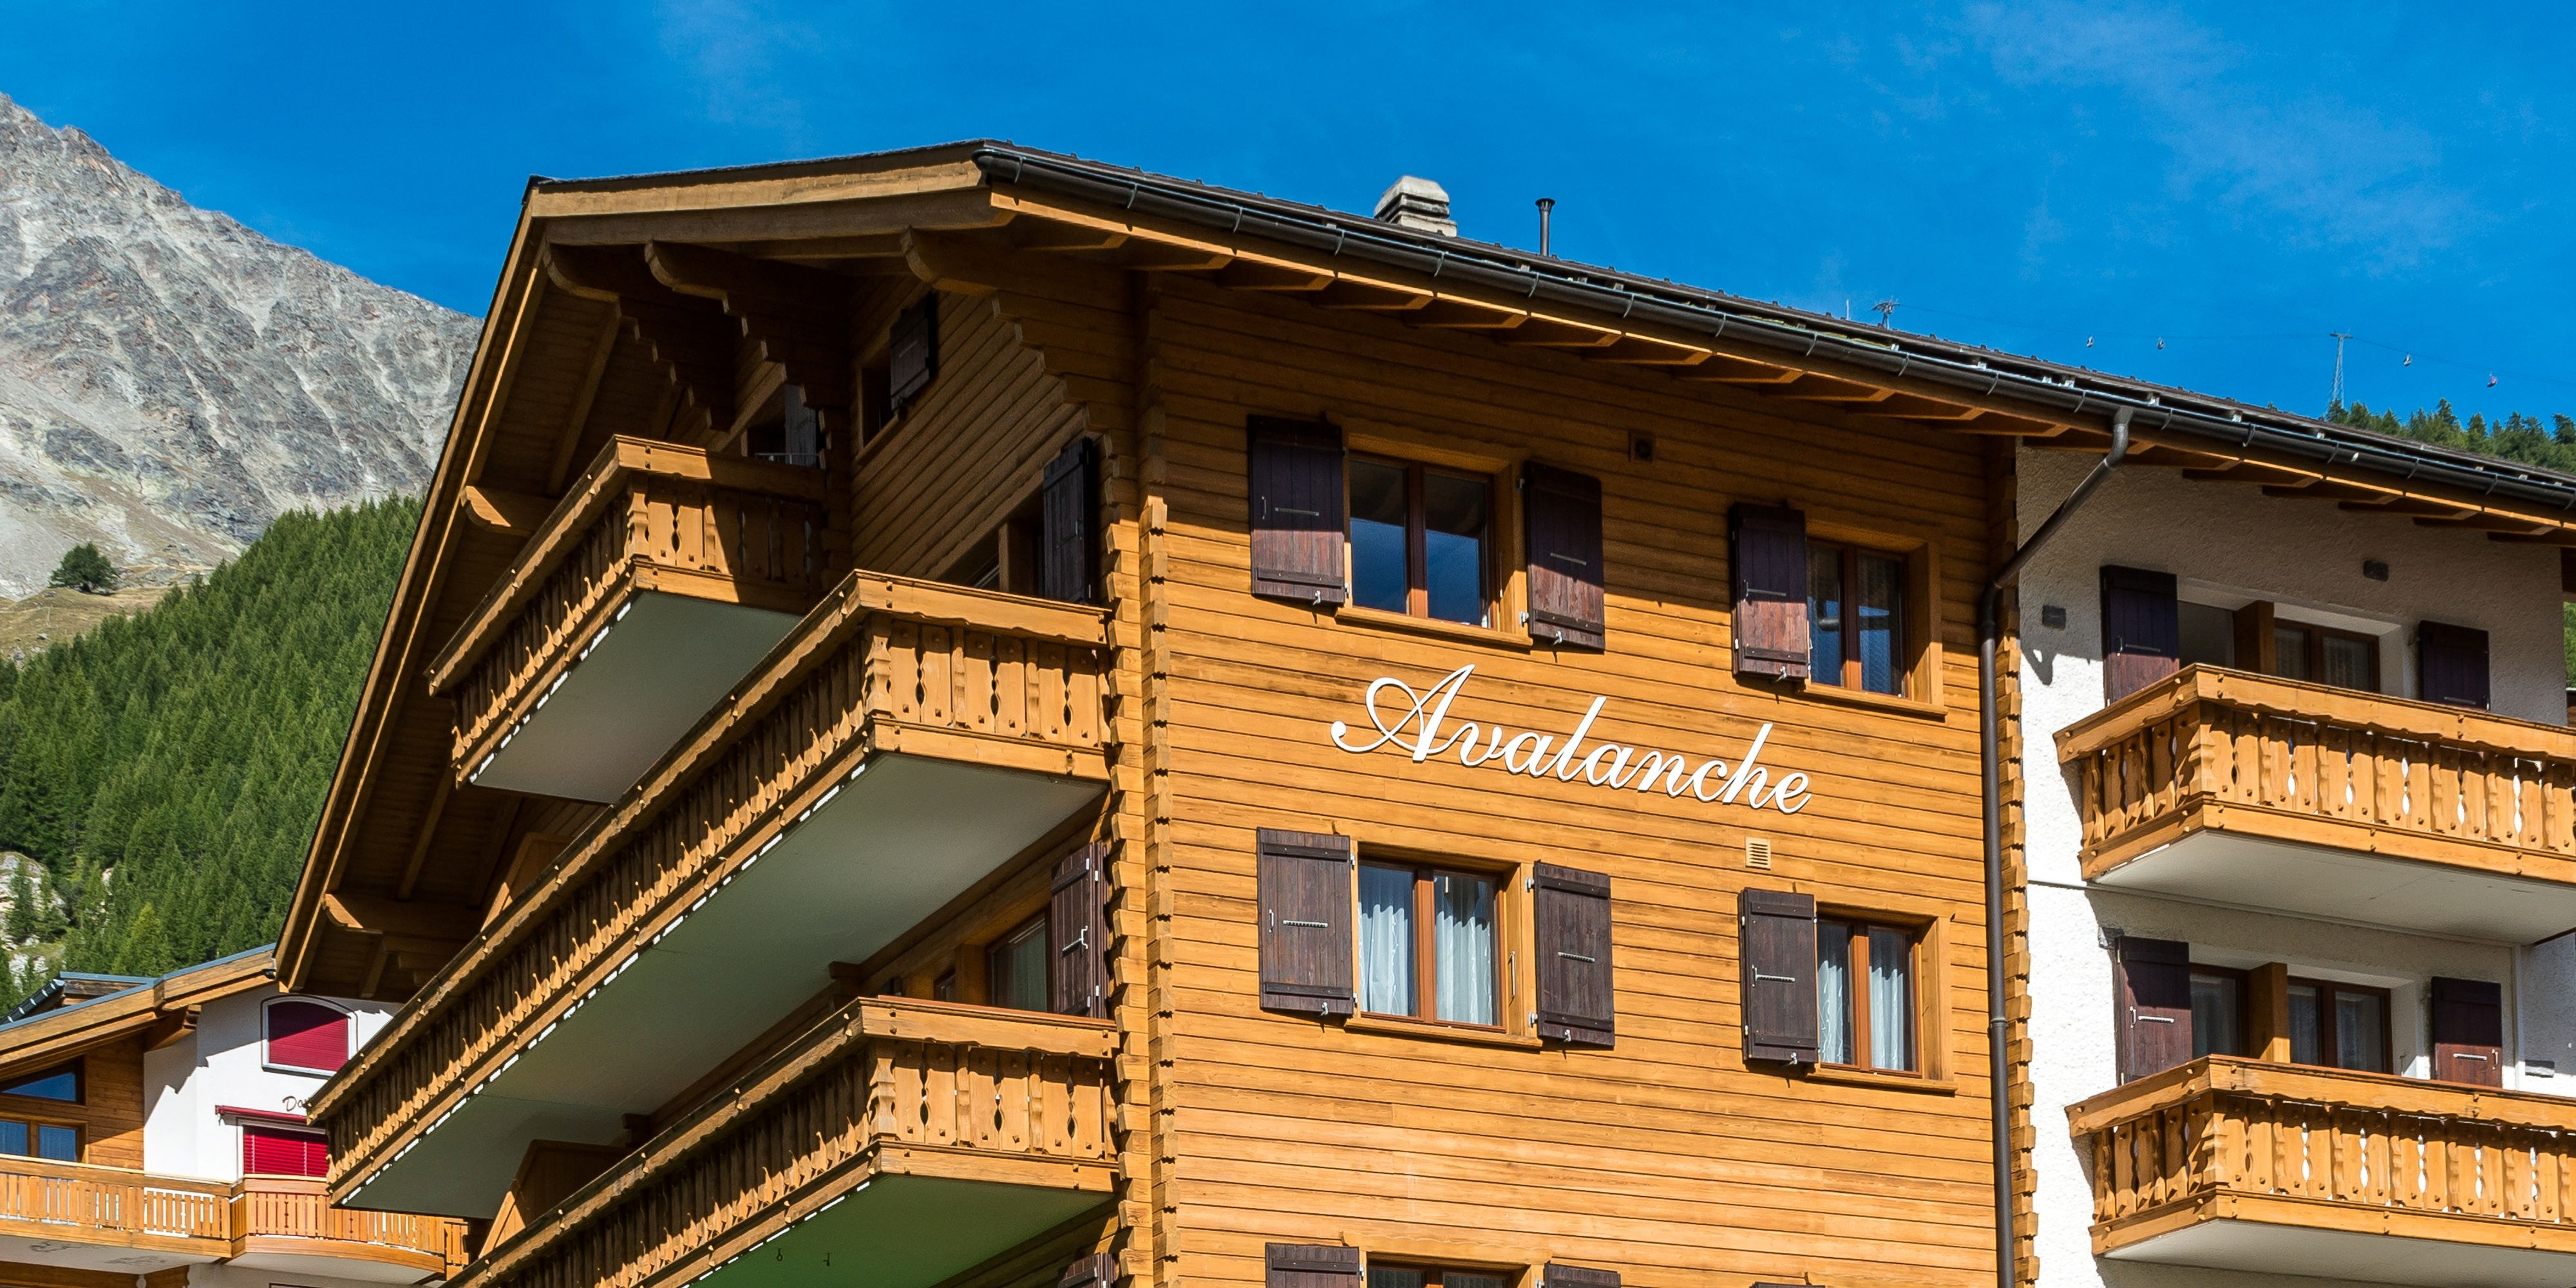 Haus Avalanche Saas-Fee